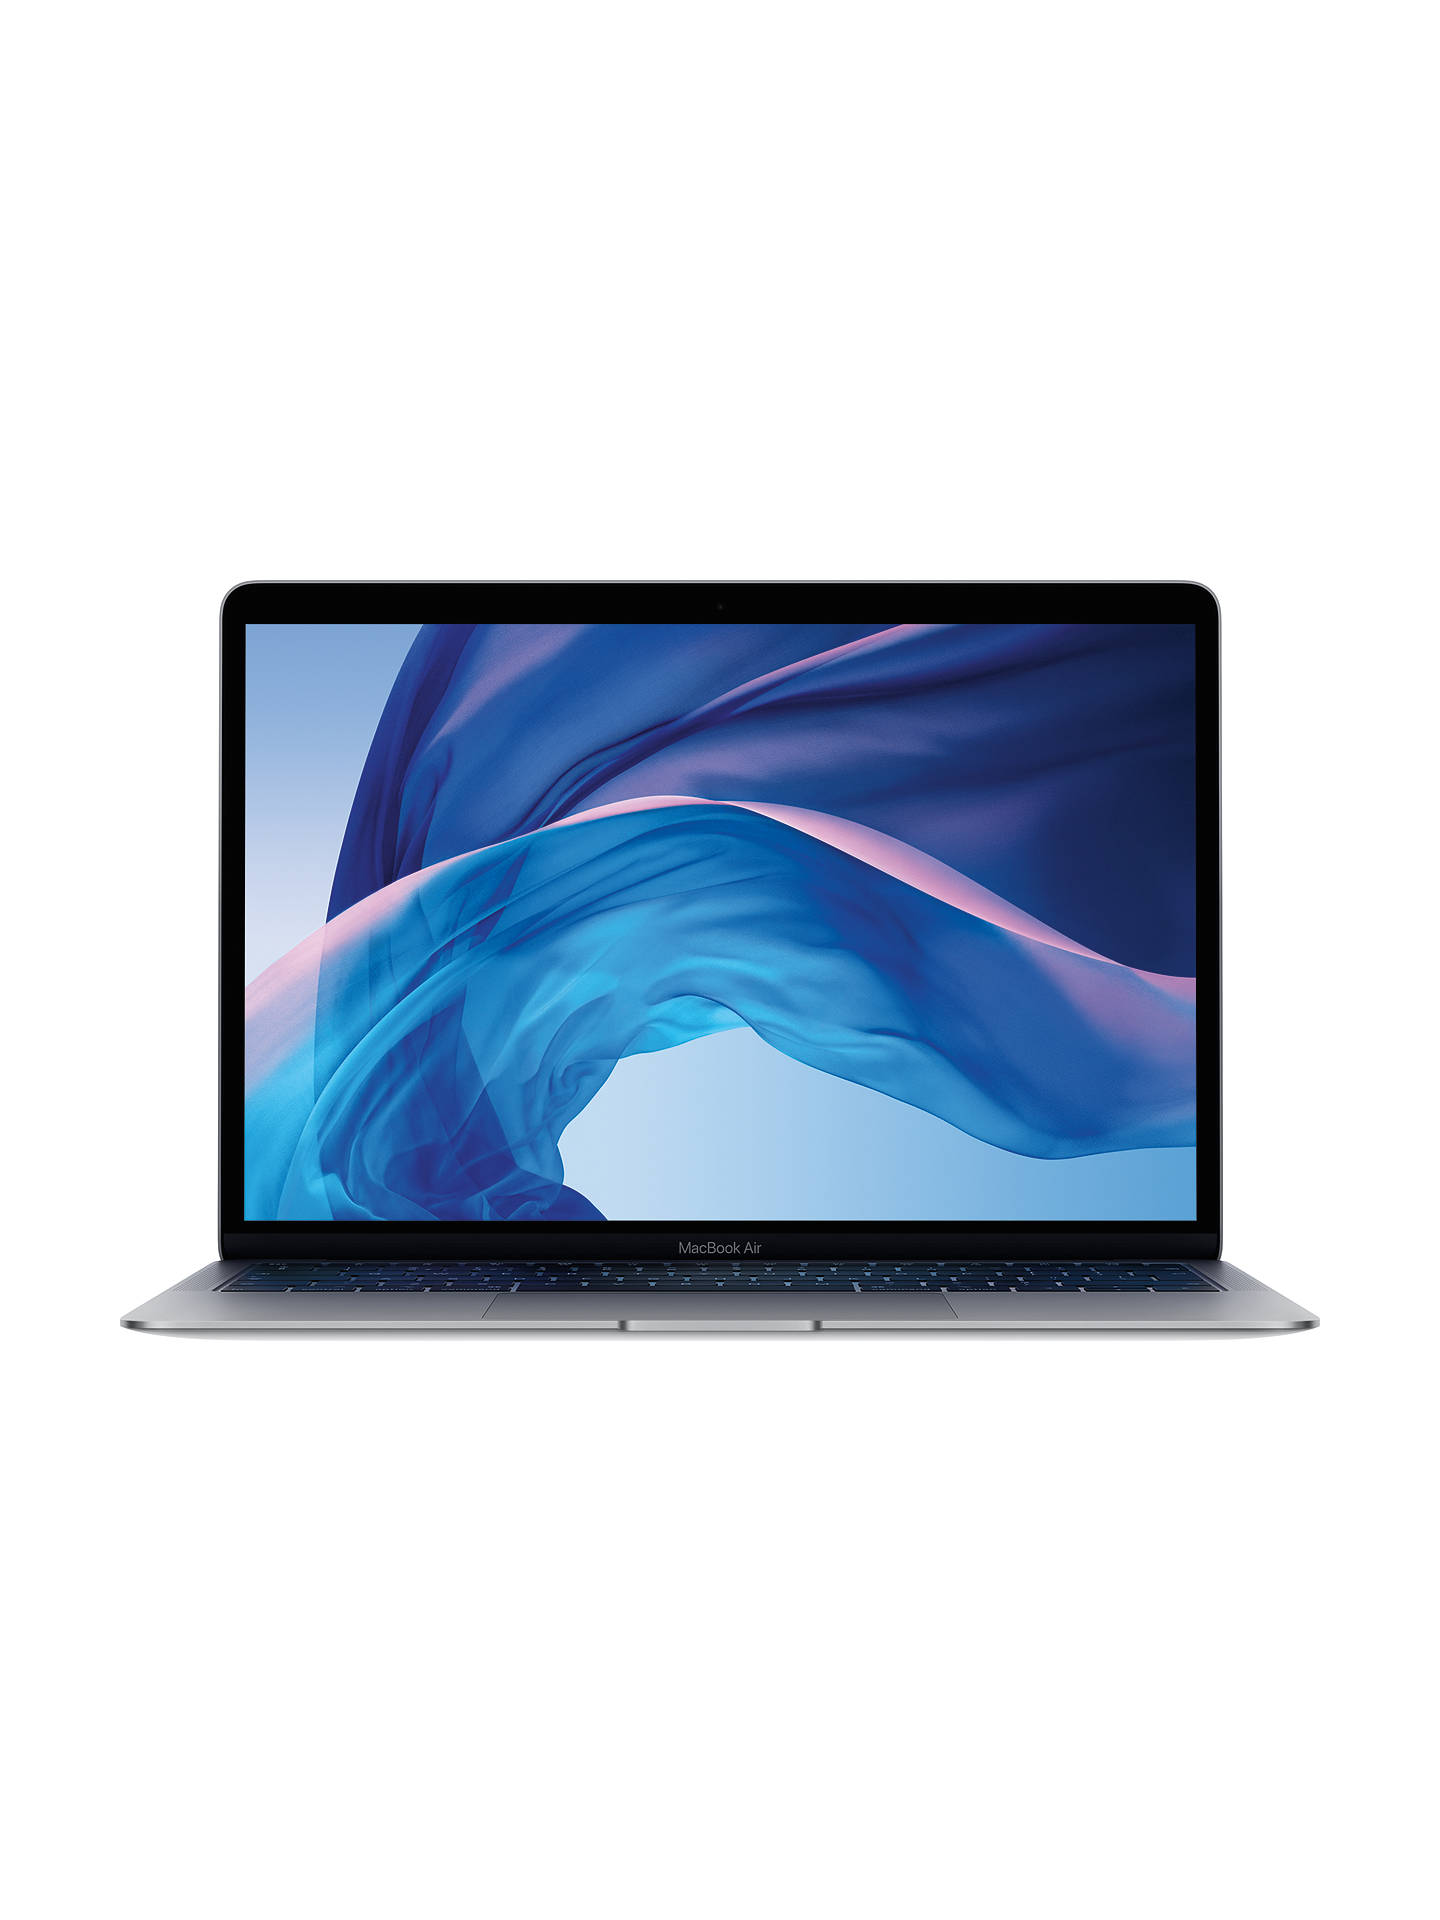 "2018 Apple MacBook Air 13.3"" Retina Display, Intel Core i5, 8GB RAM, 256GB SSD, Space Grey"